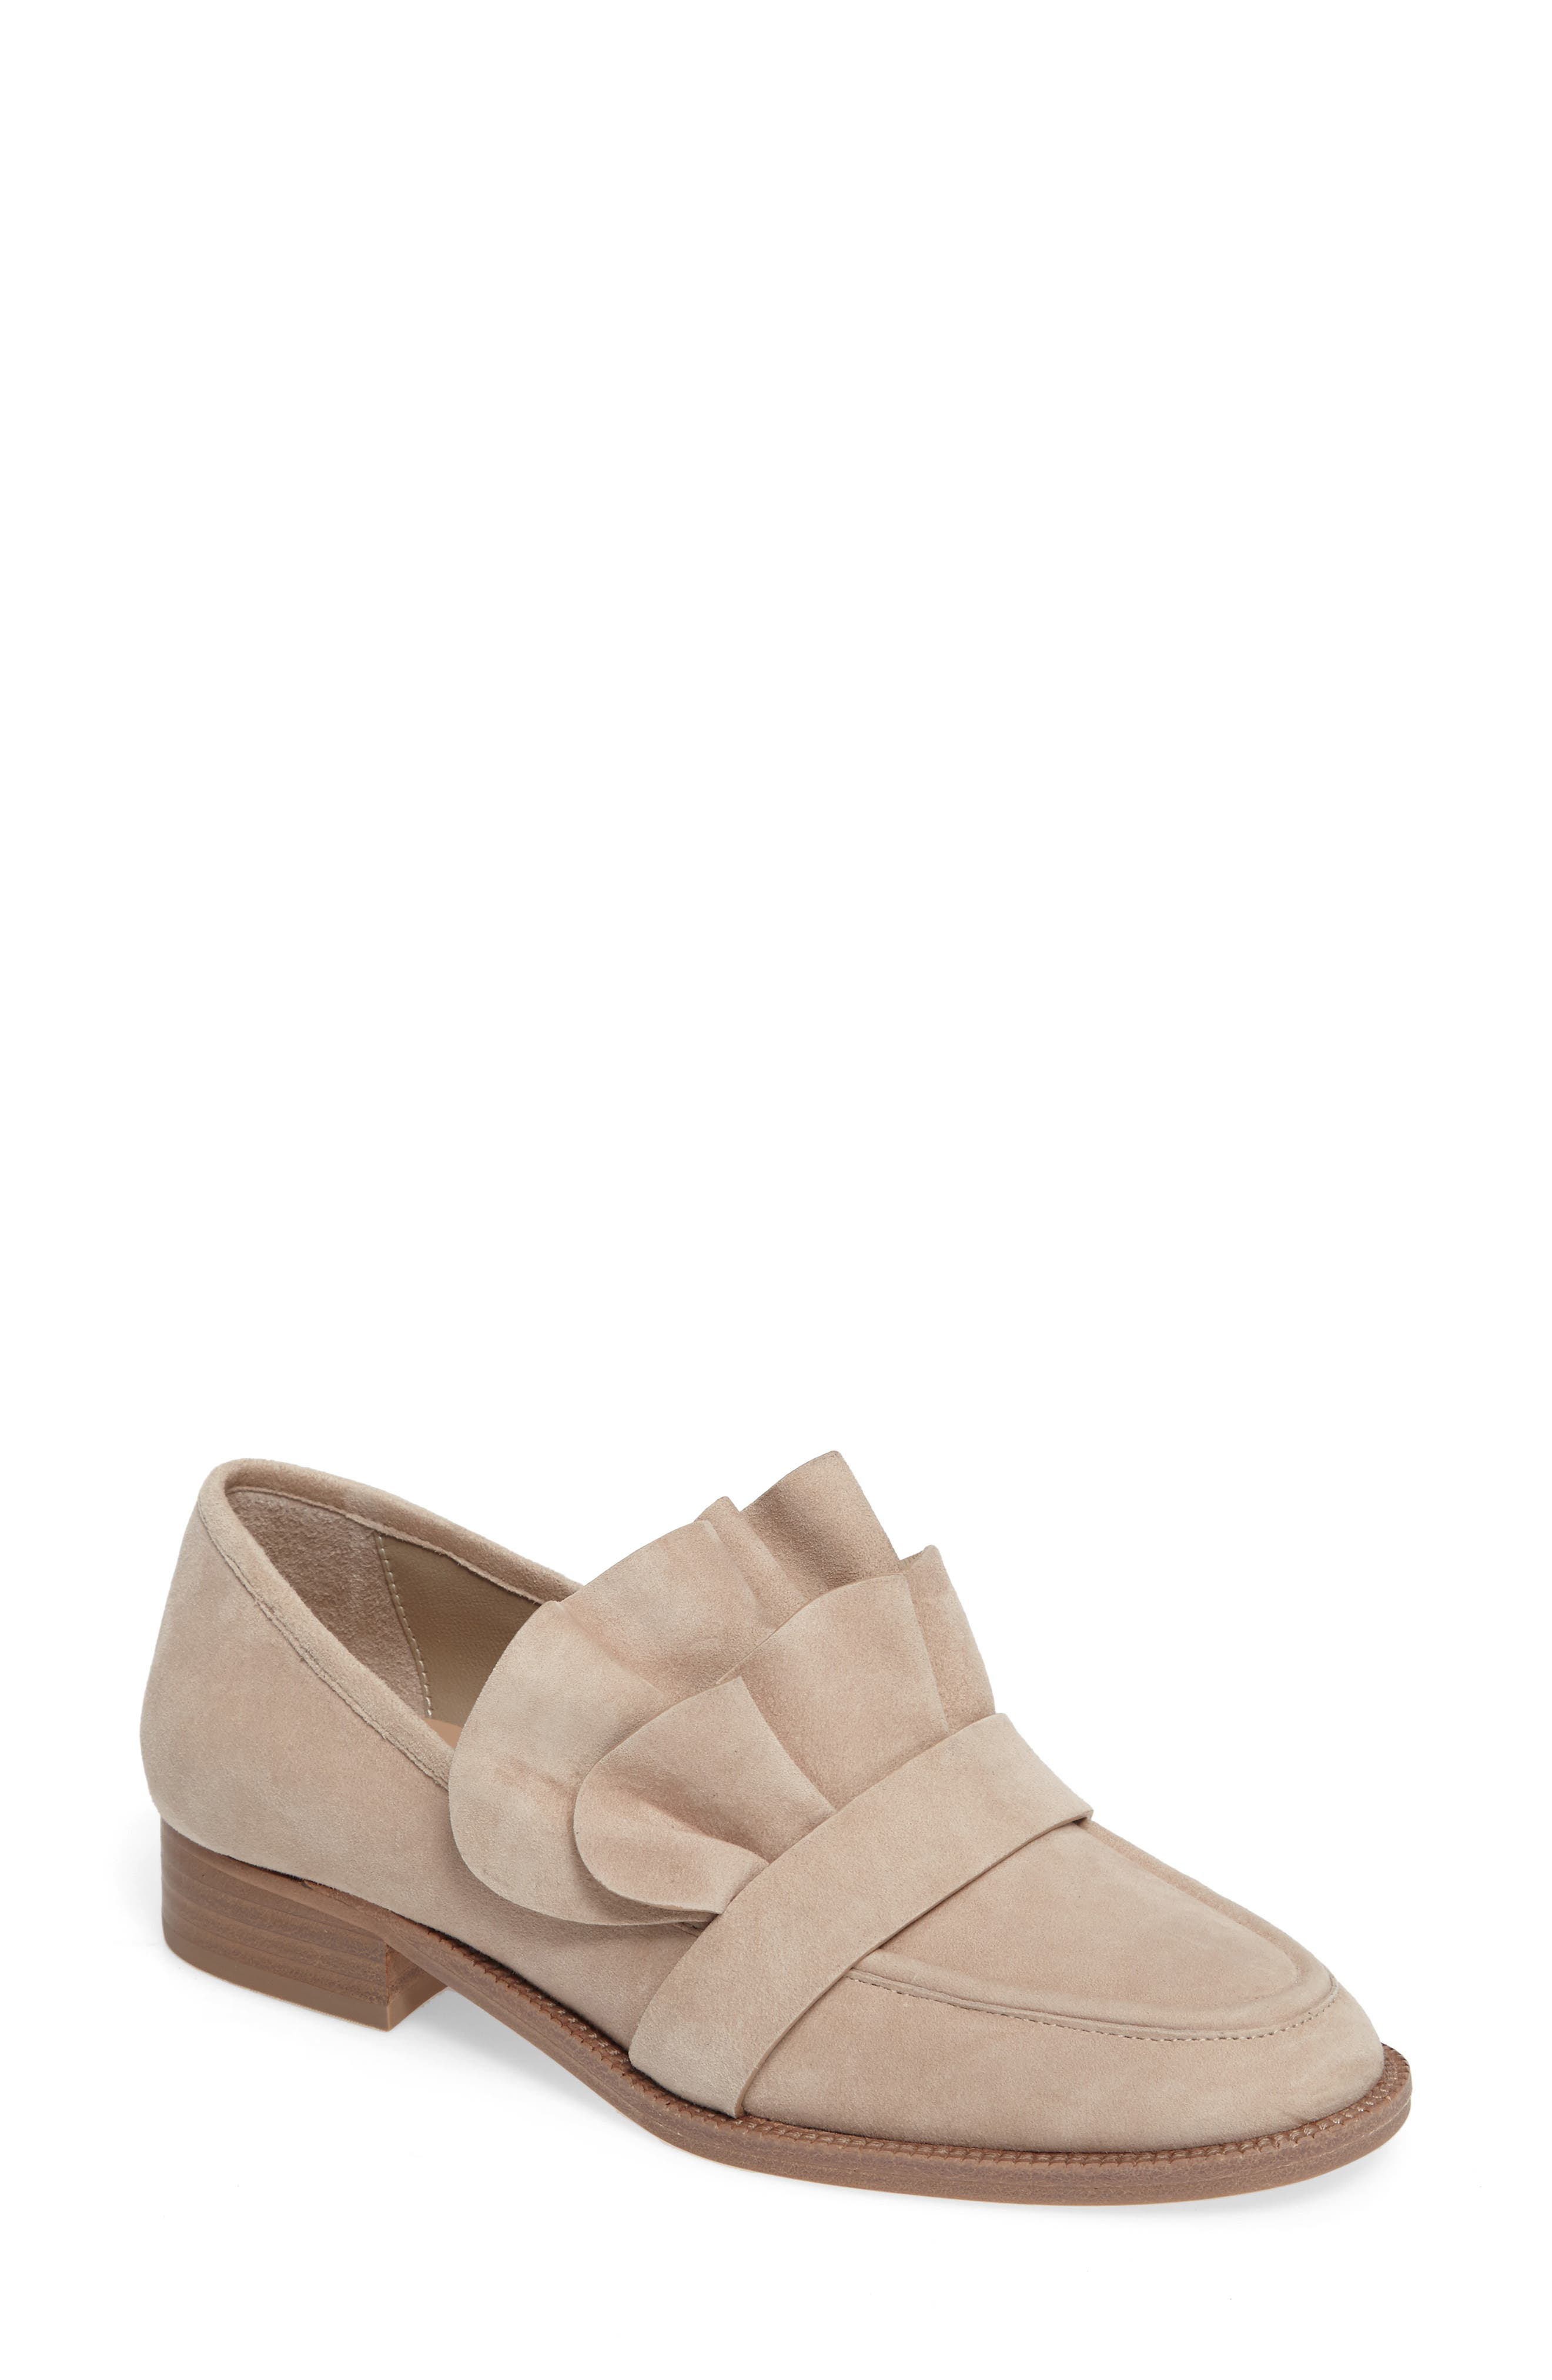 Tenley Ruffled Loafer,                             Main thumbnail 3, color,